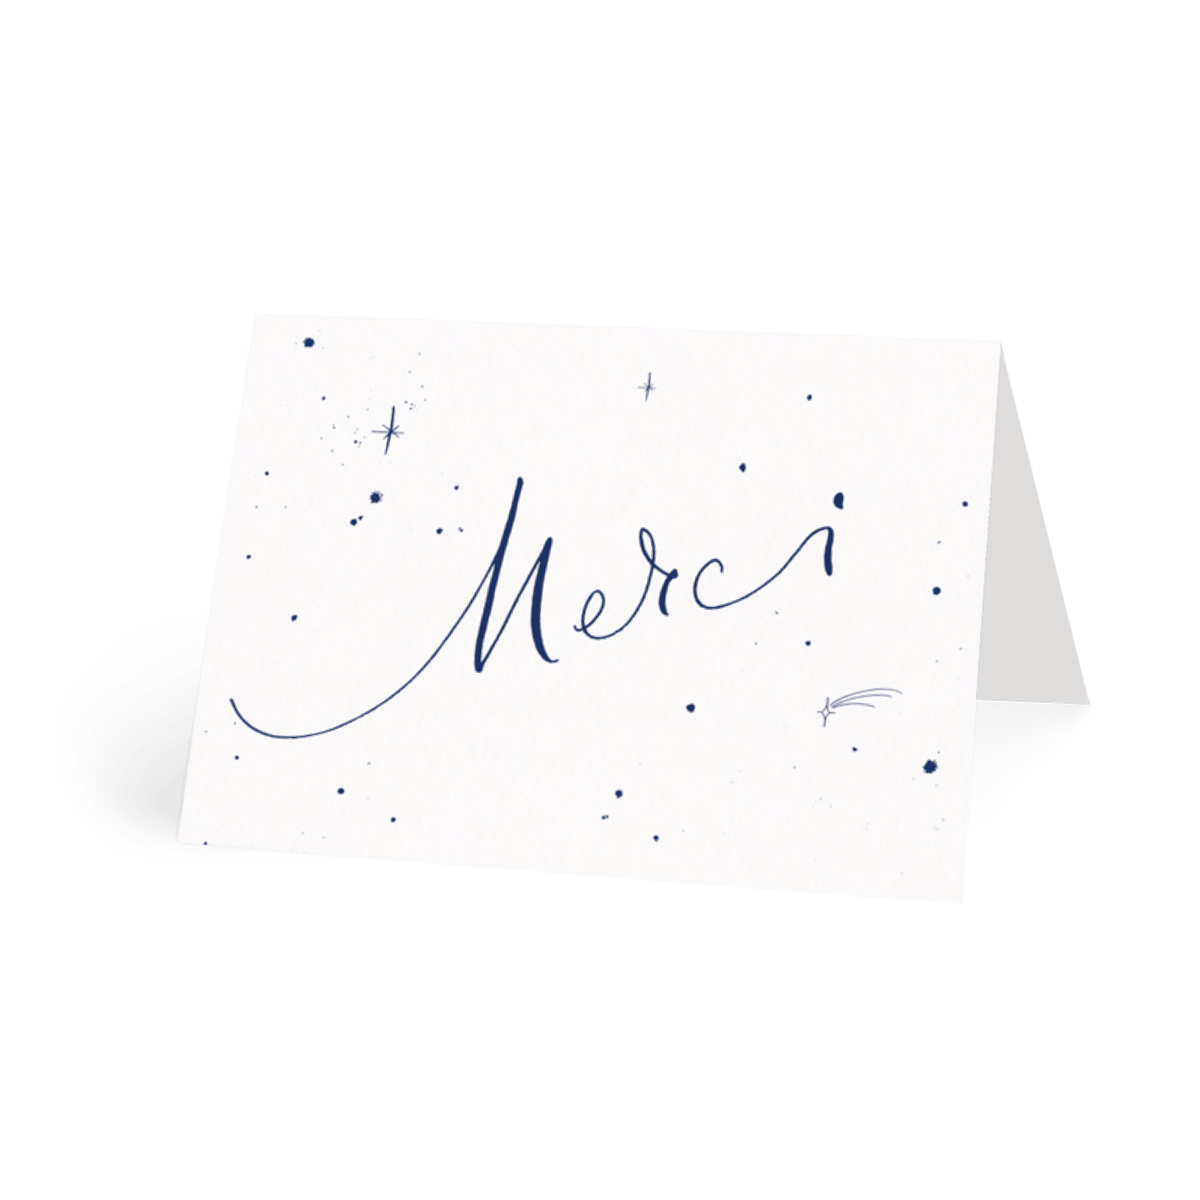 Https%3a%2f%2fwww.papier.com%2fproduct image%2f26649%2f14%2fmerci starry navy 6672 front 1502195435.png?ixlib=rb 1.1